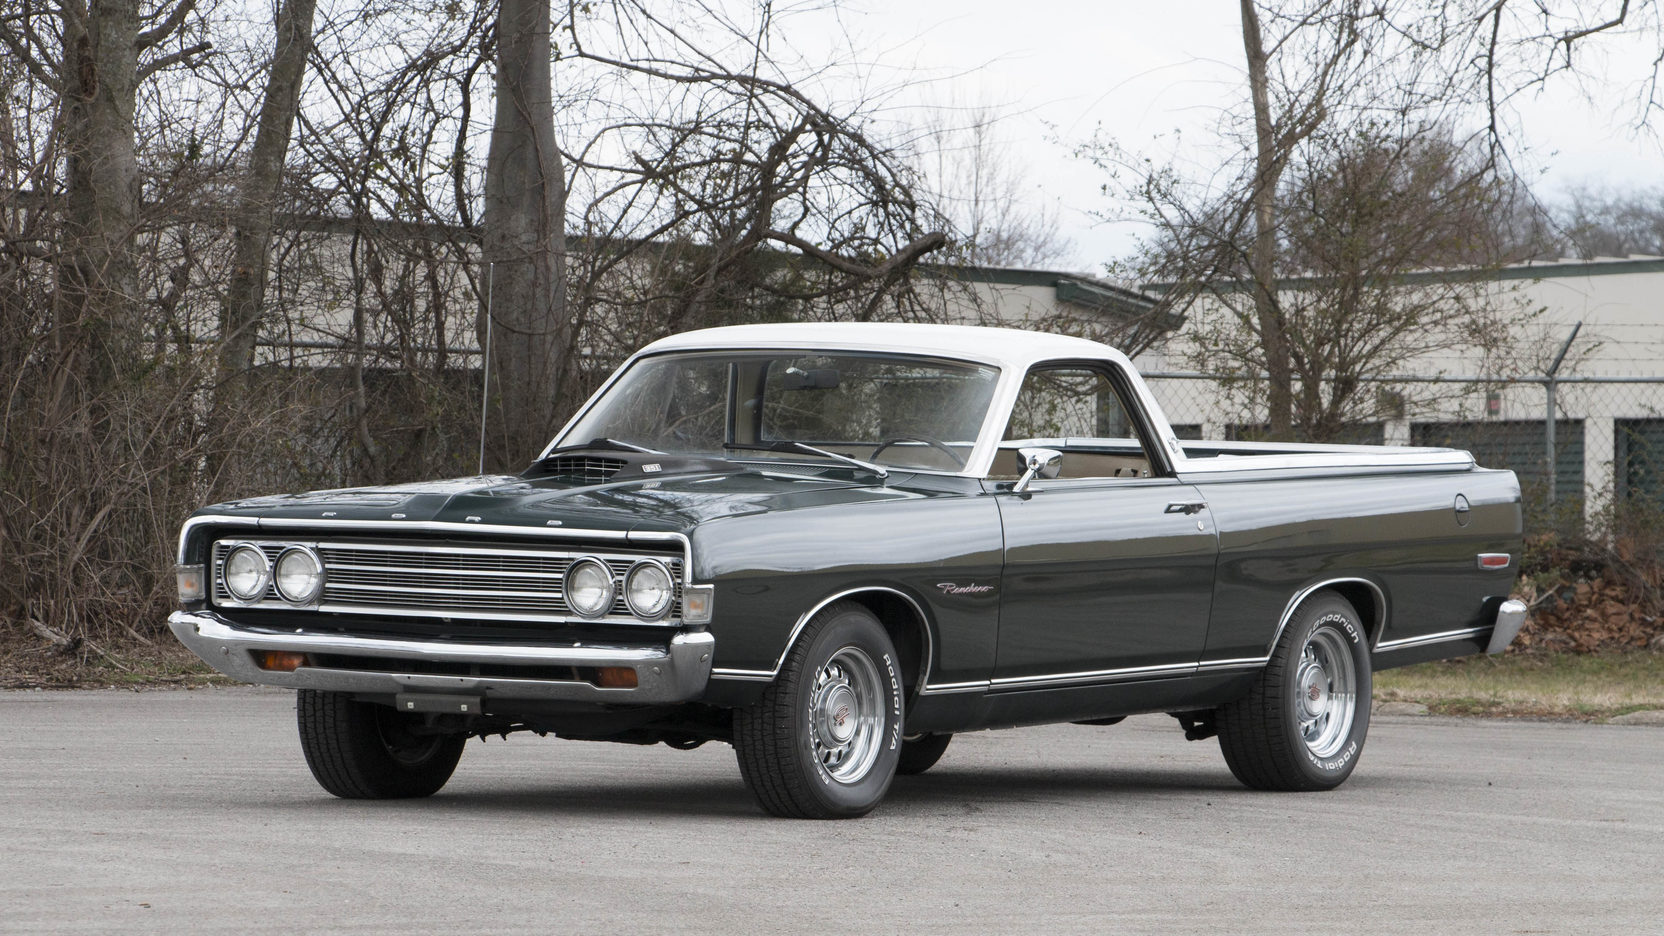 1969 Ford Ranchero front 3/4